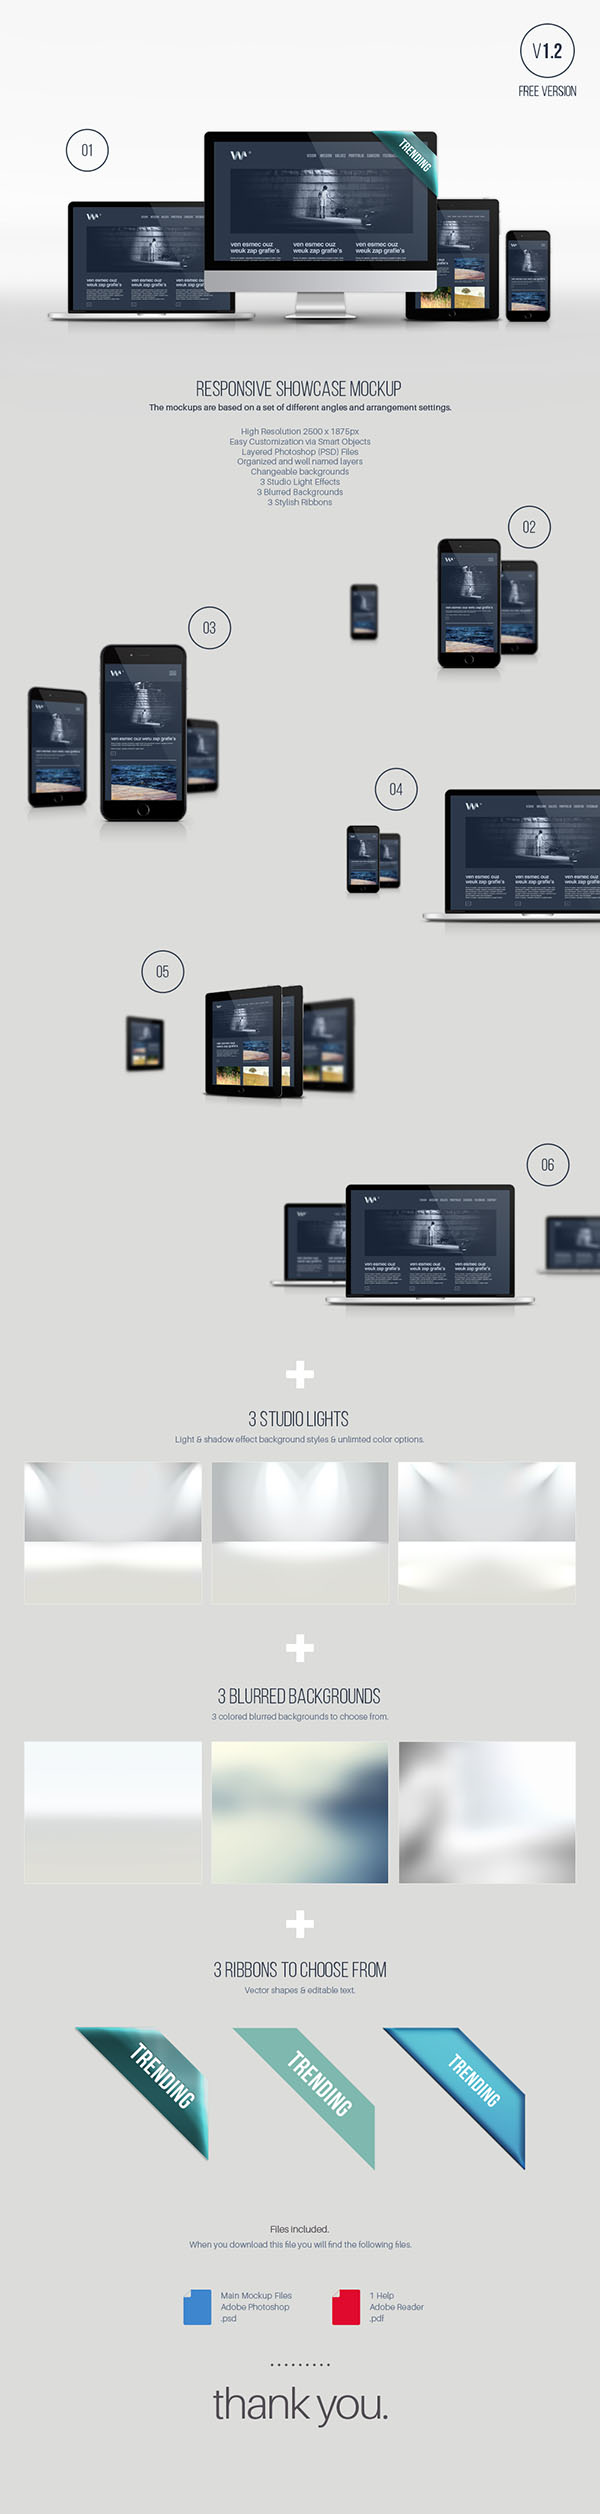 Responsive Showcase Mockup Template To Present Your Web Designs In A